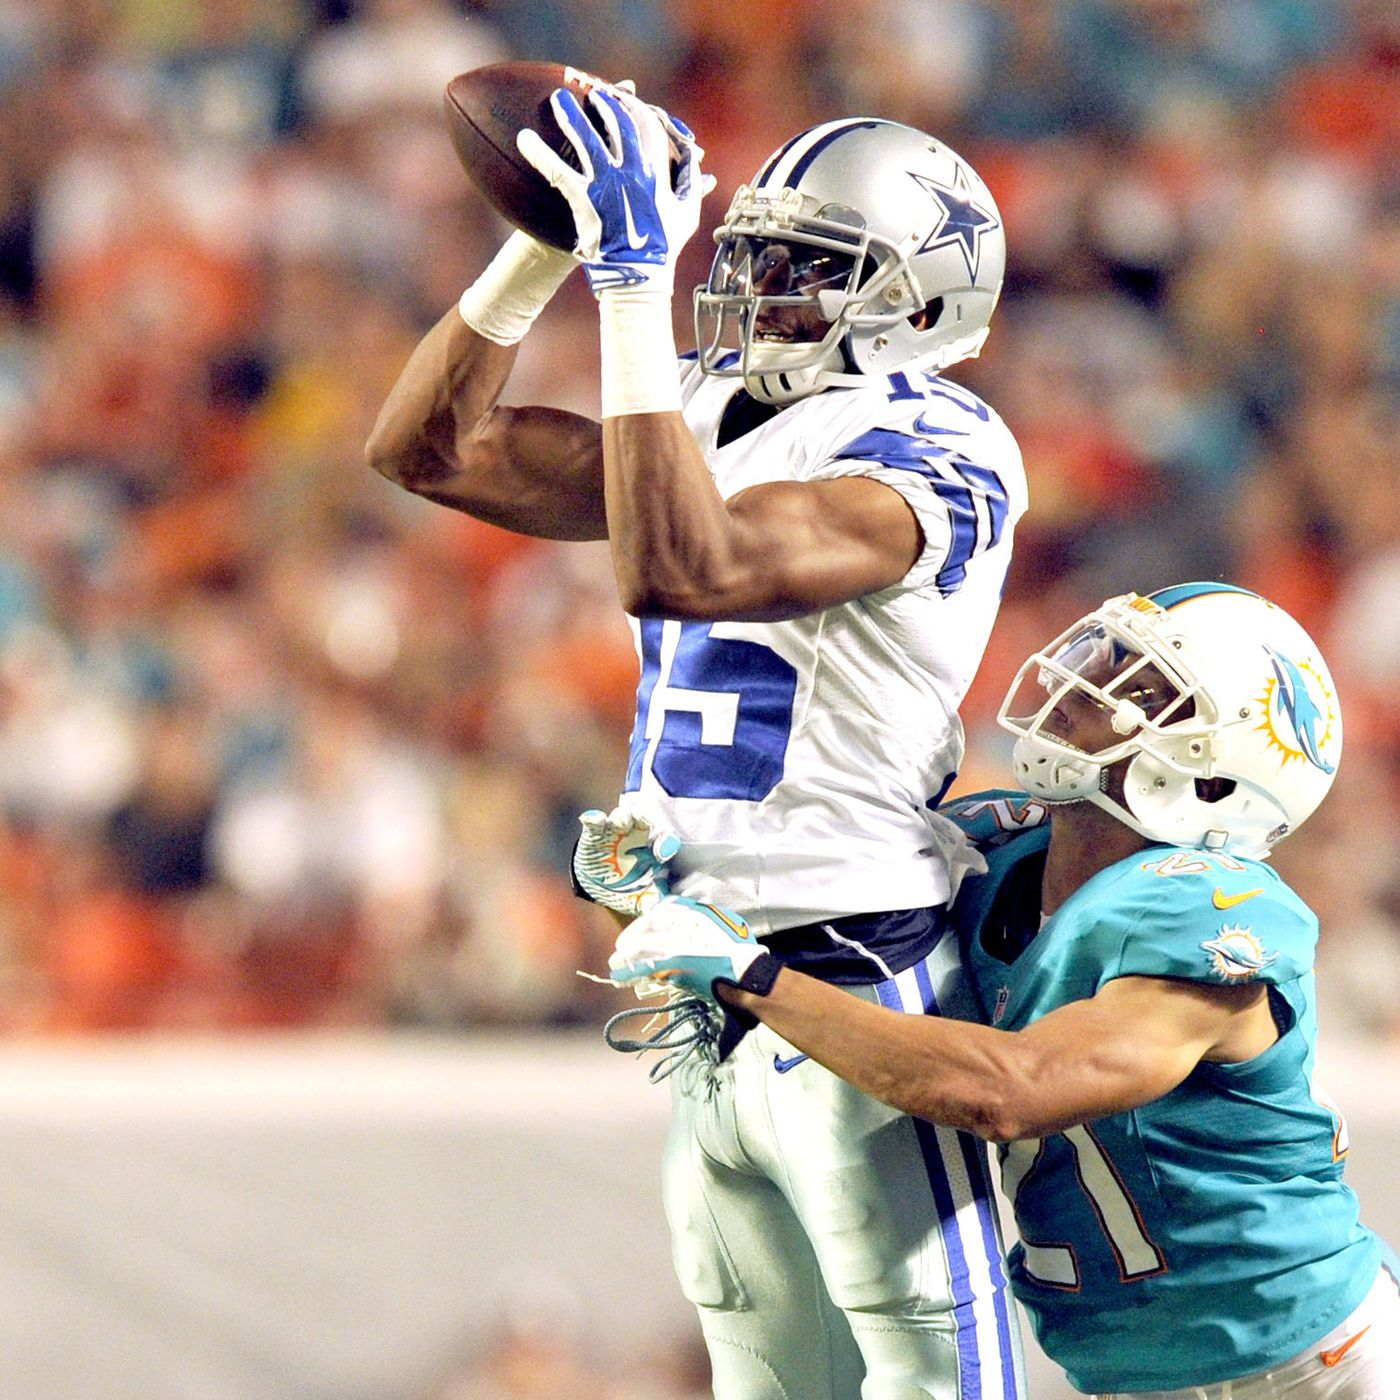 Devin Street poised to make impact with Dallas Cowboys as a rookie ...